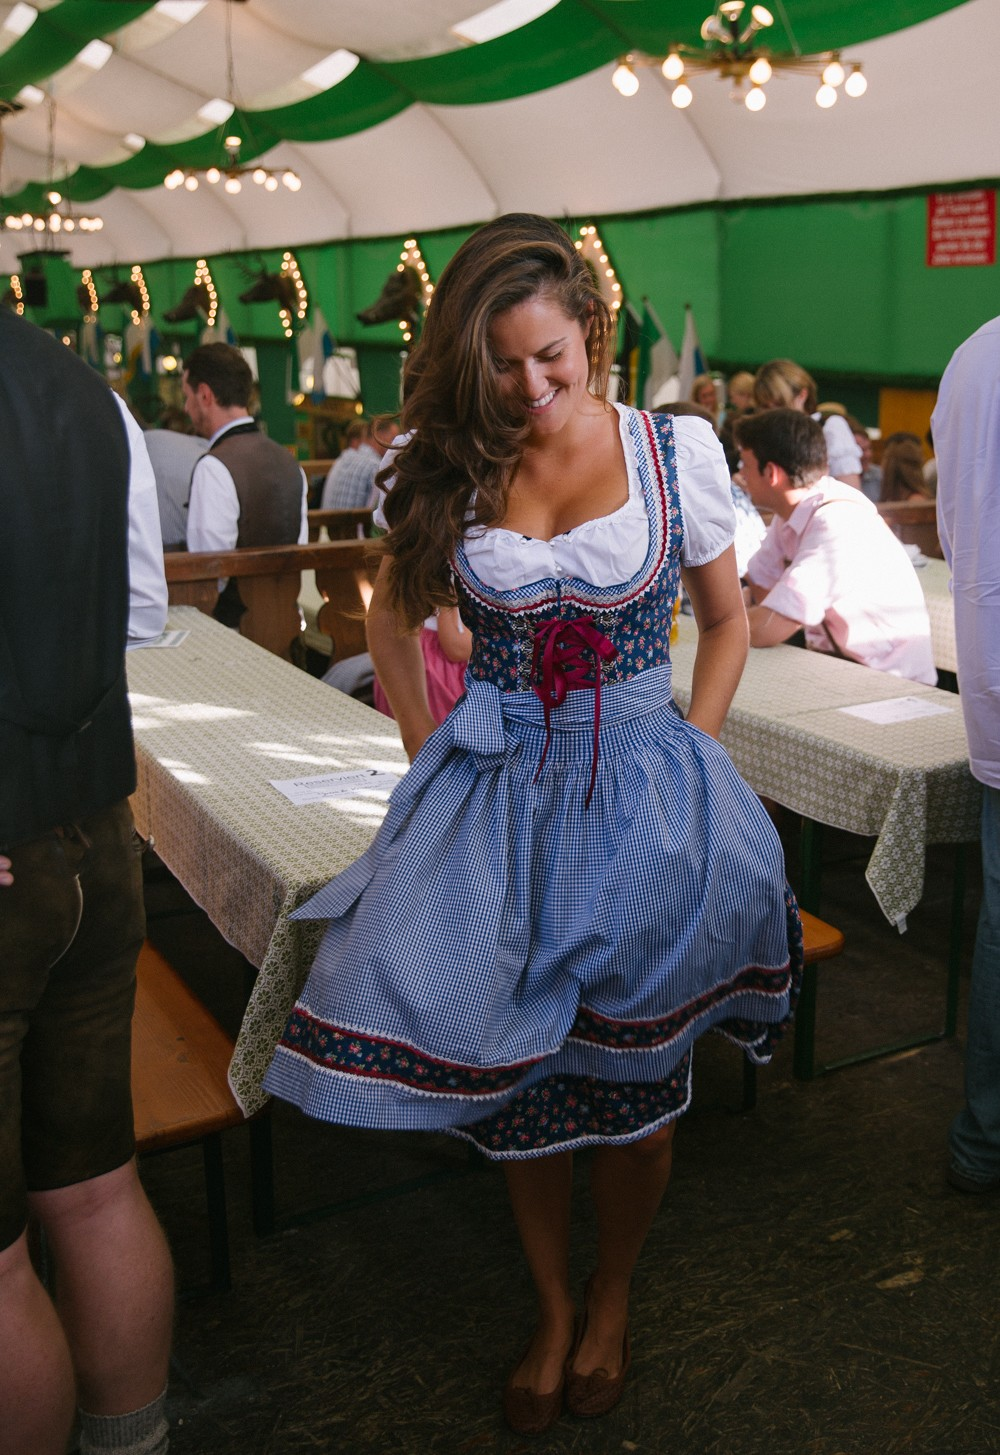 oktoberfest-germany-11